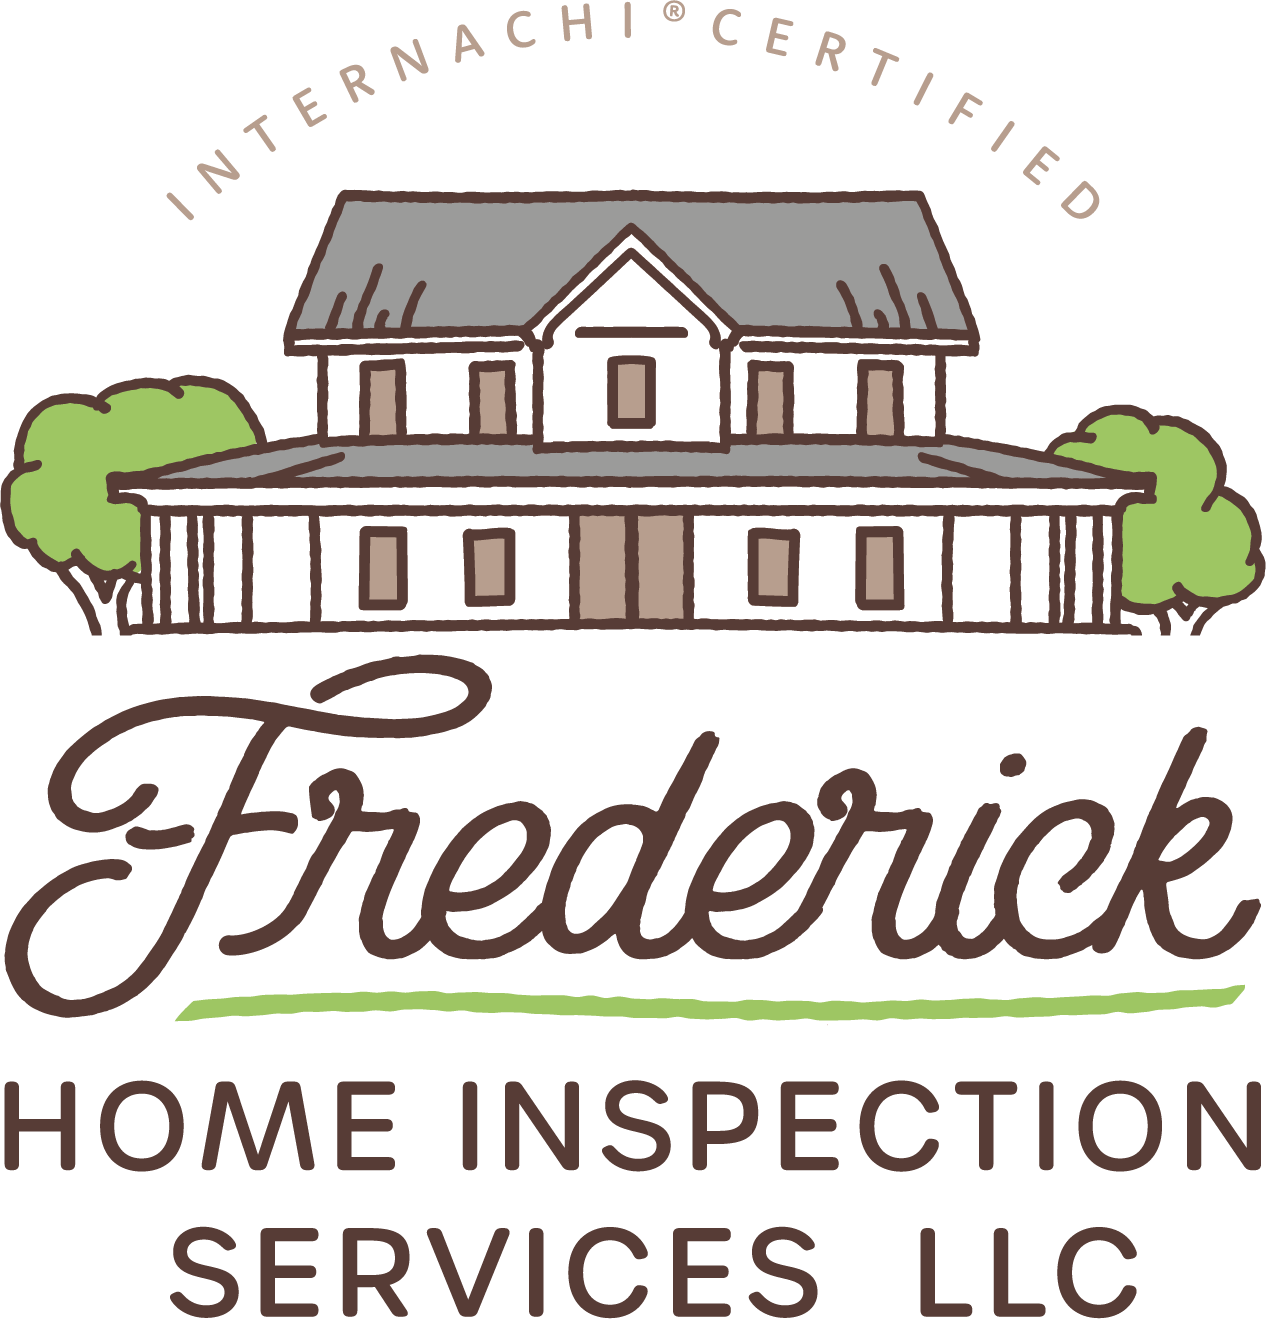 Frederick Home Inspection Services LLC Logo